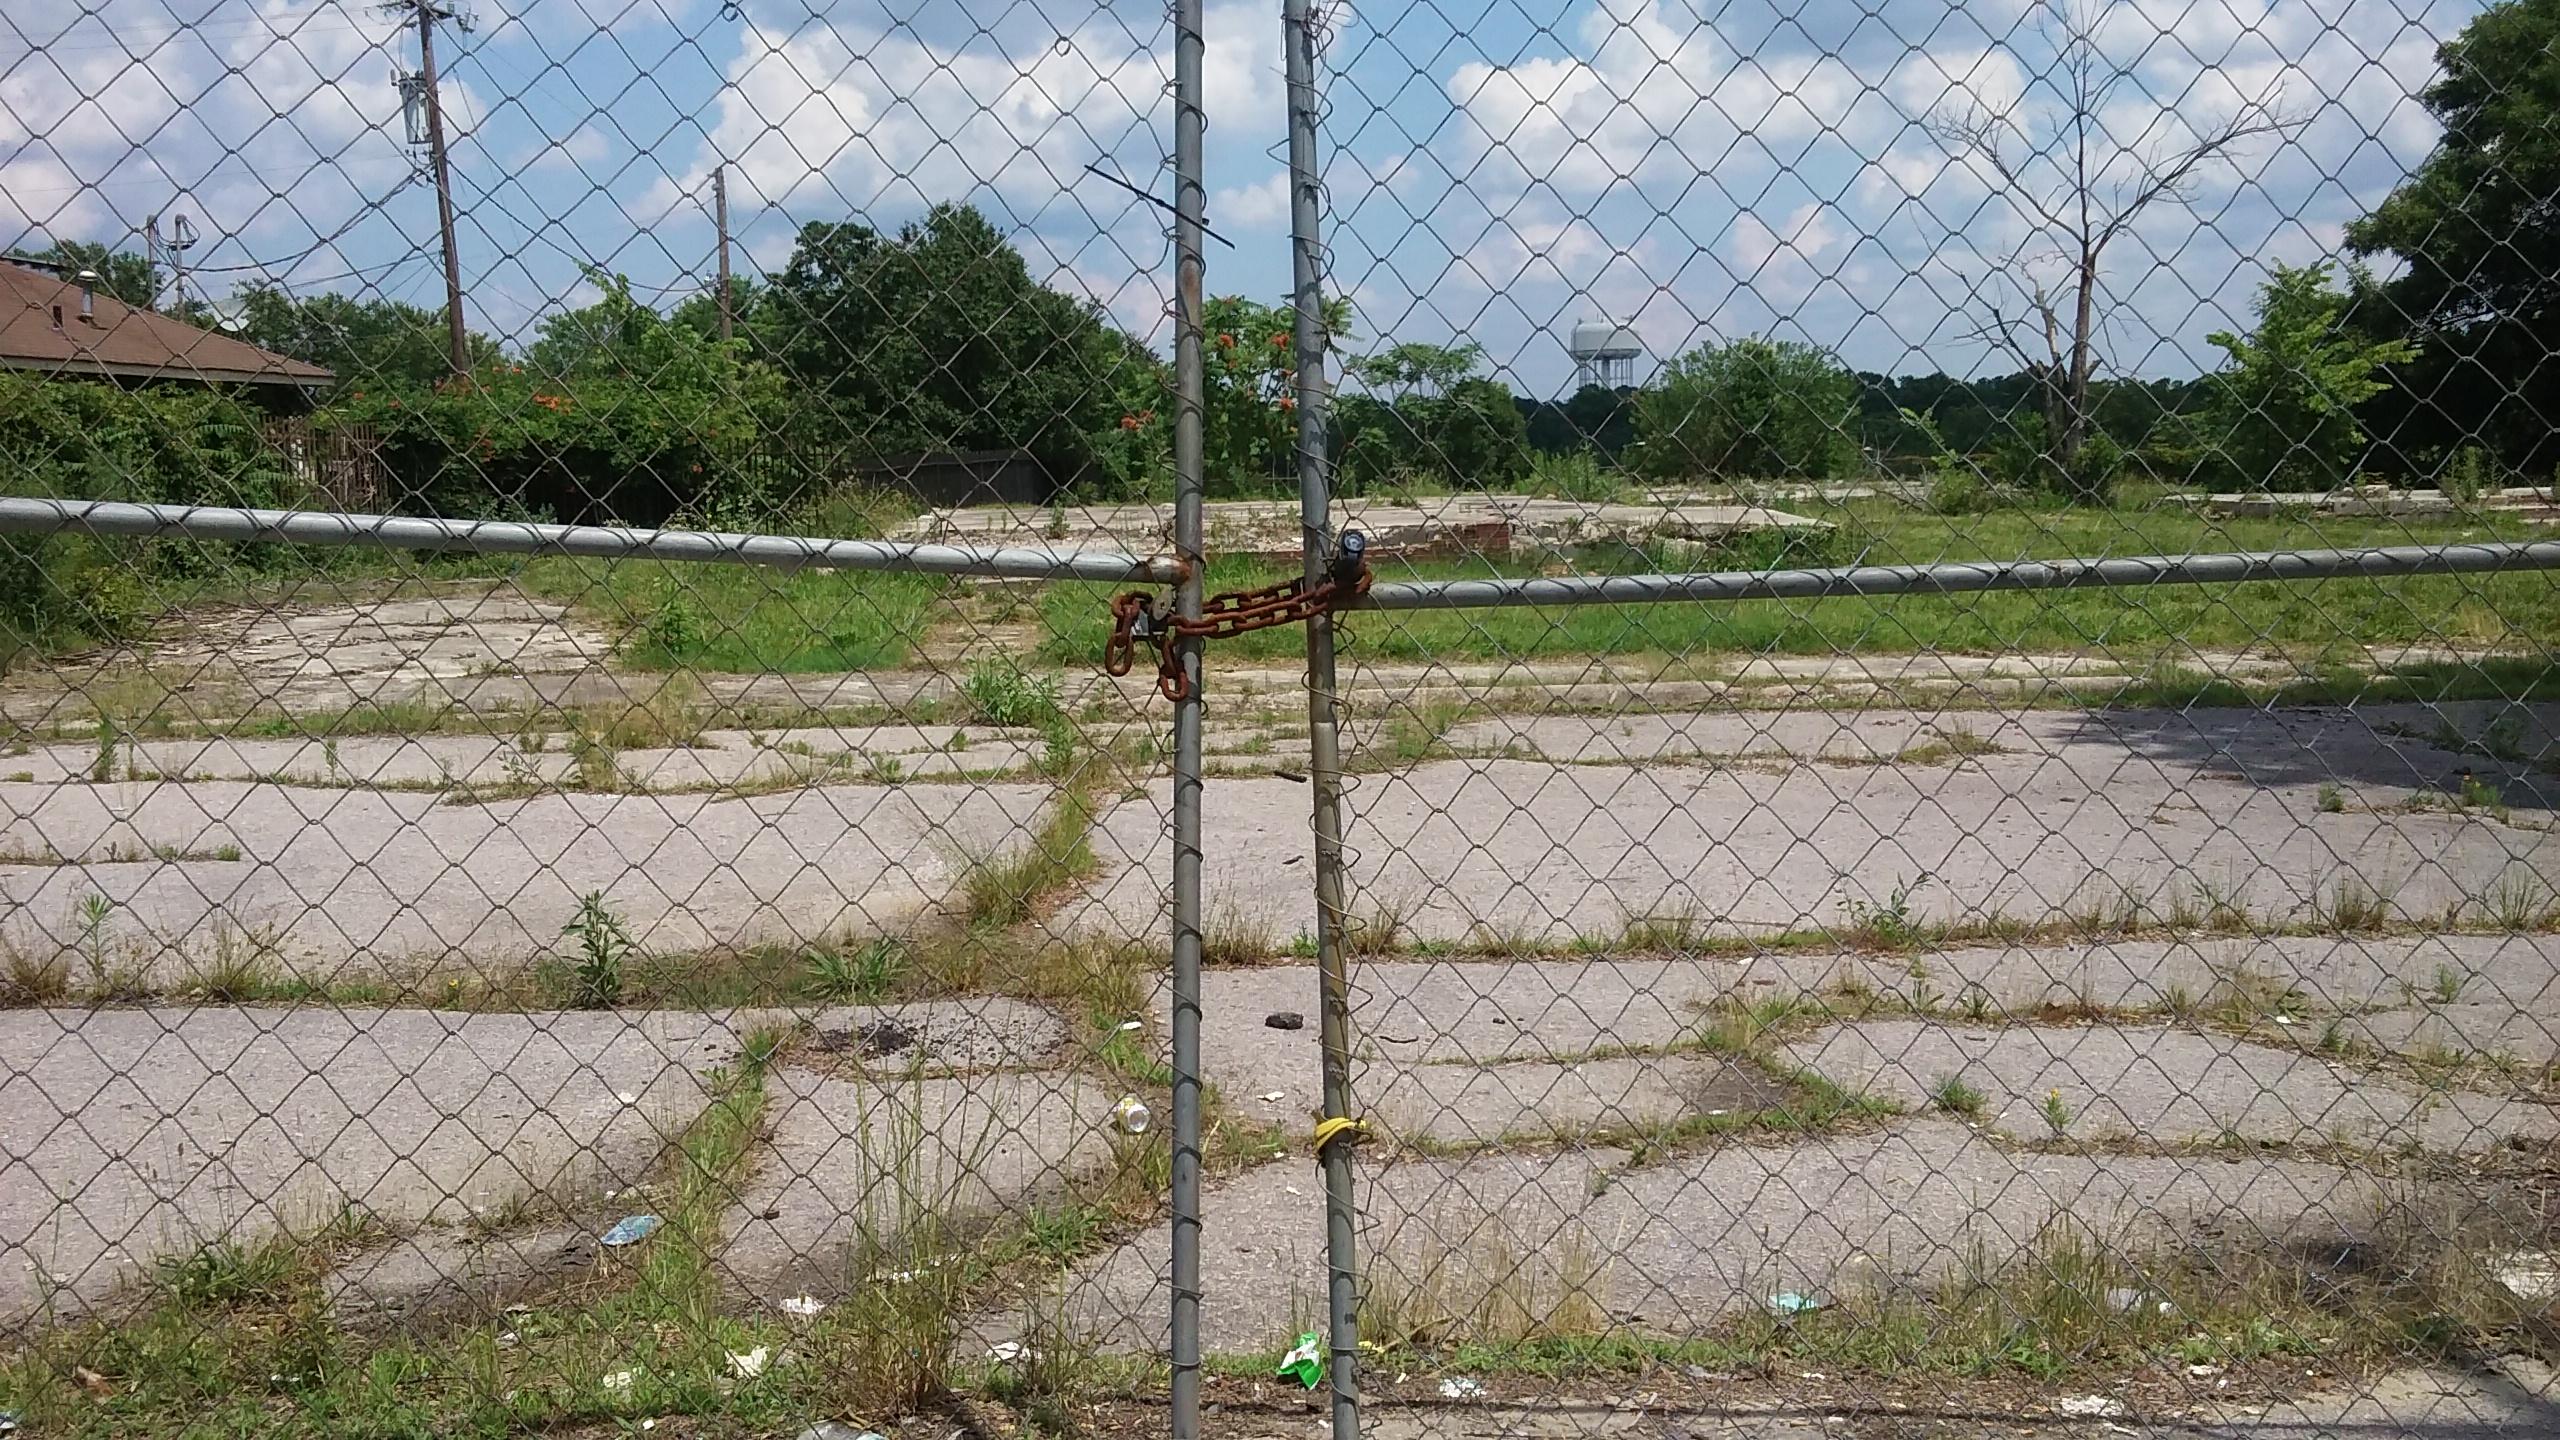 Figure 5 Hayti, site of former public housing